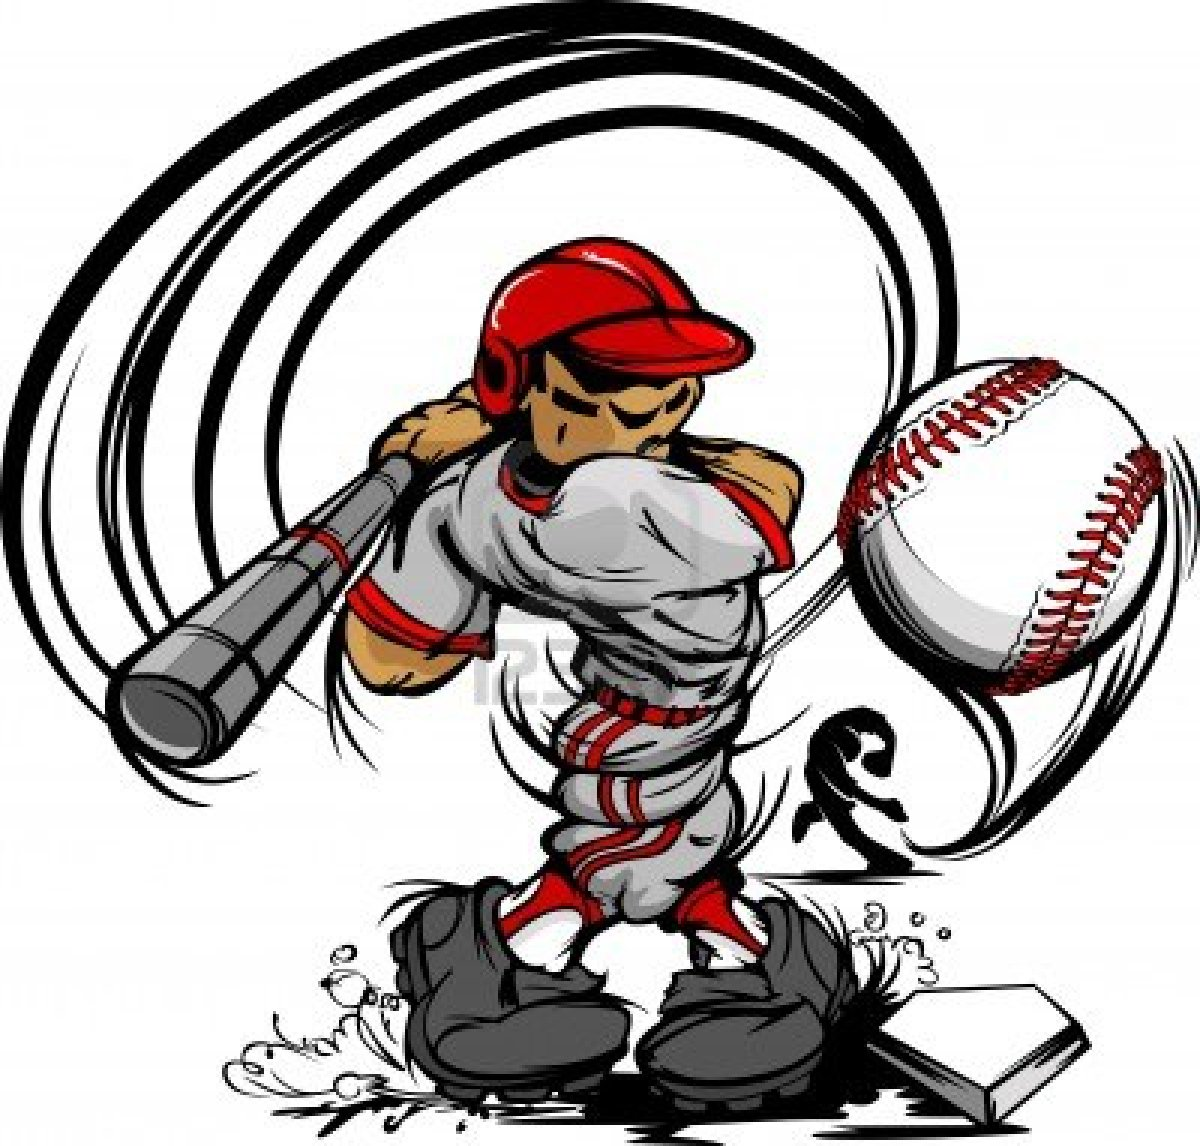 Baseball Cartoon Player.